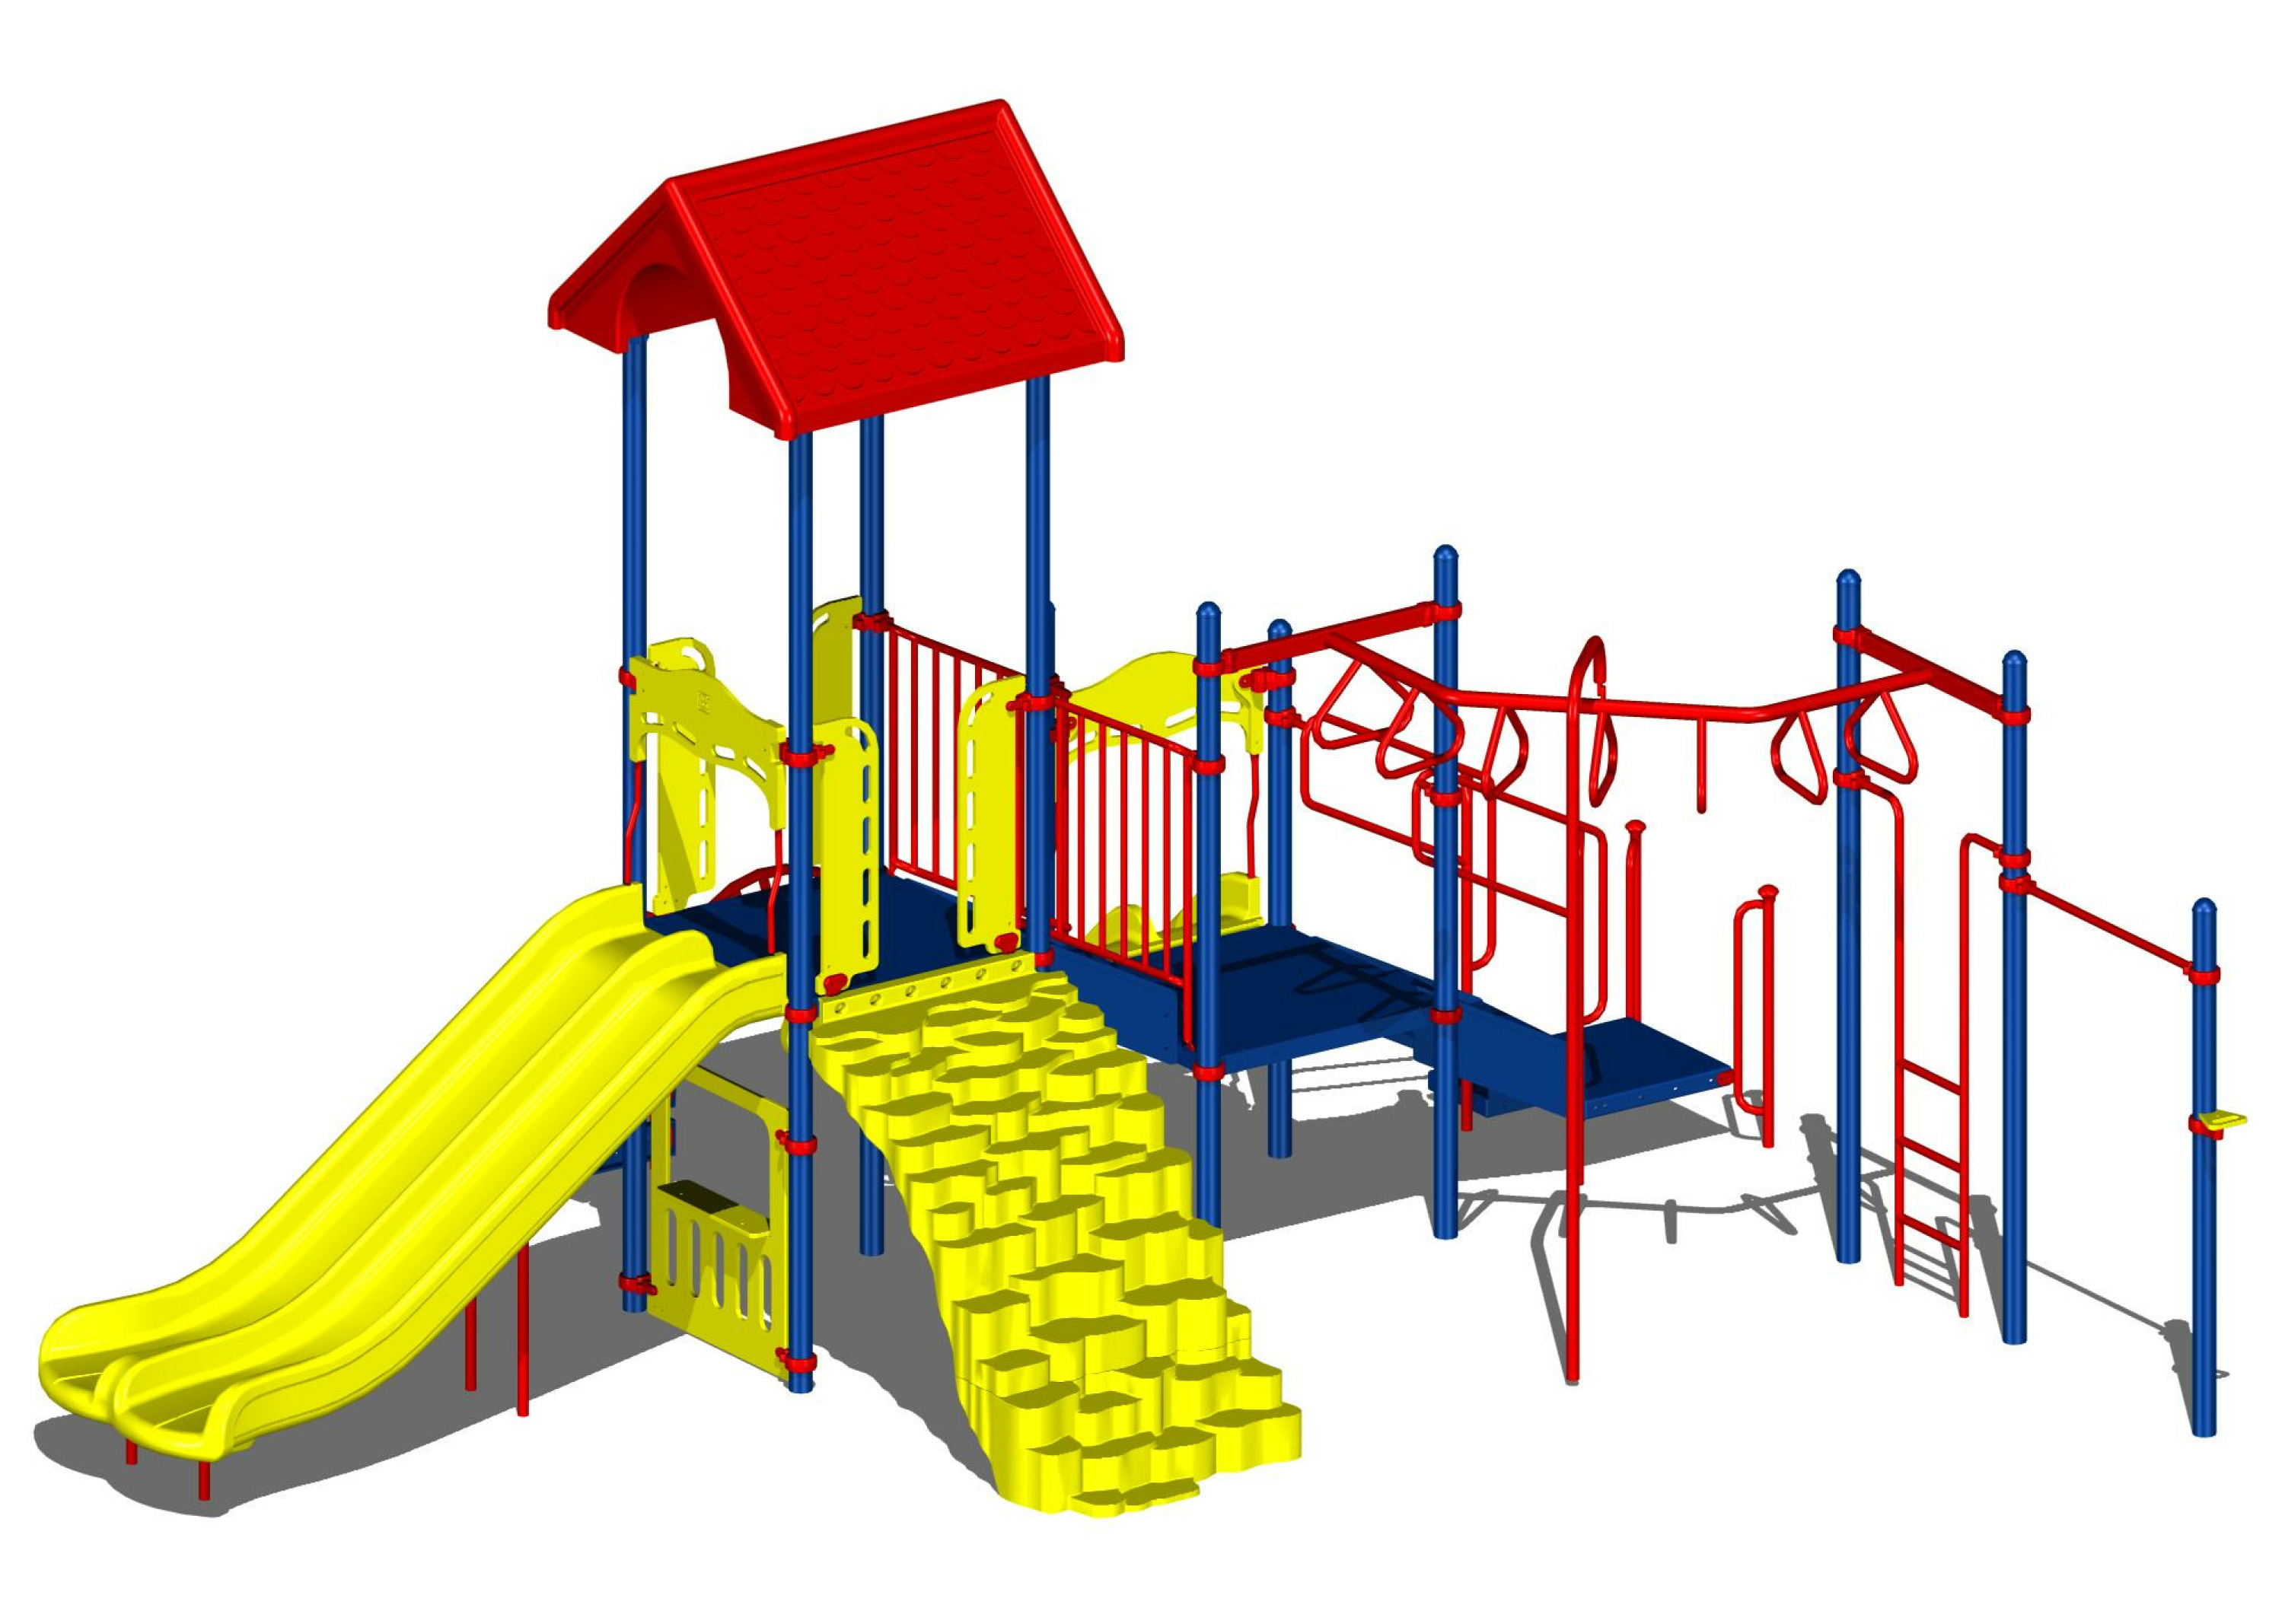 Los Angeles Playground Equipment Company Completes San Diego ...